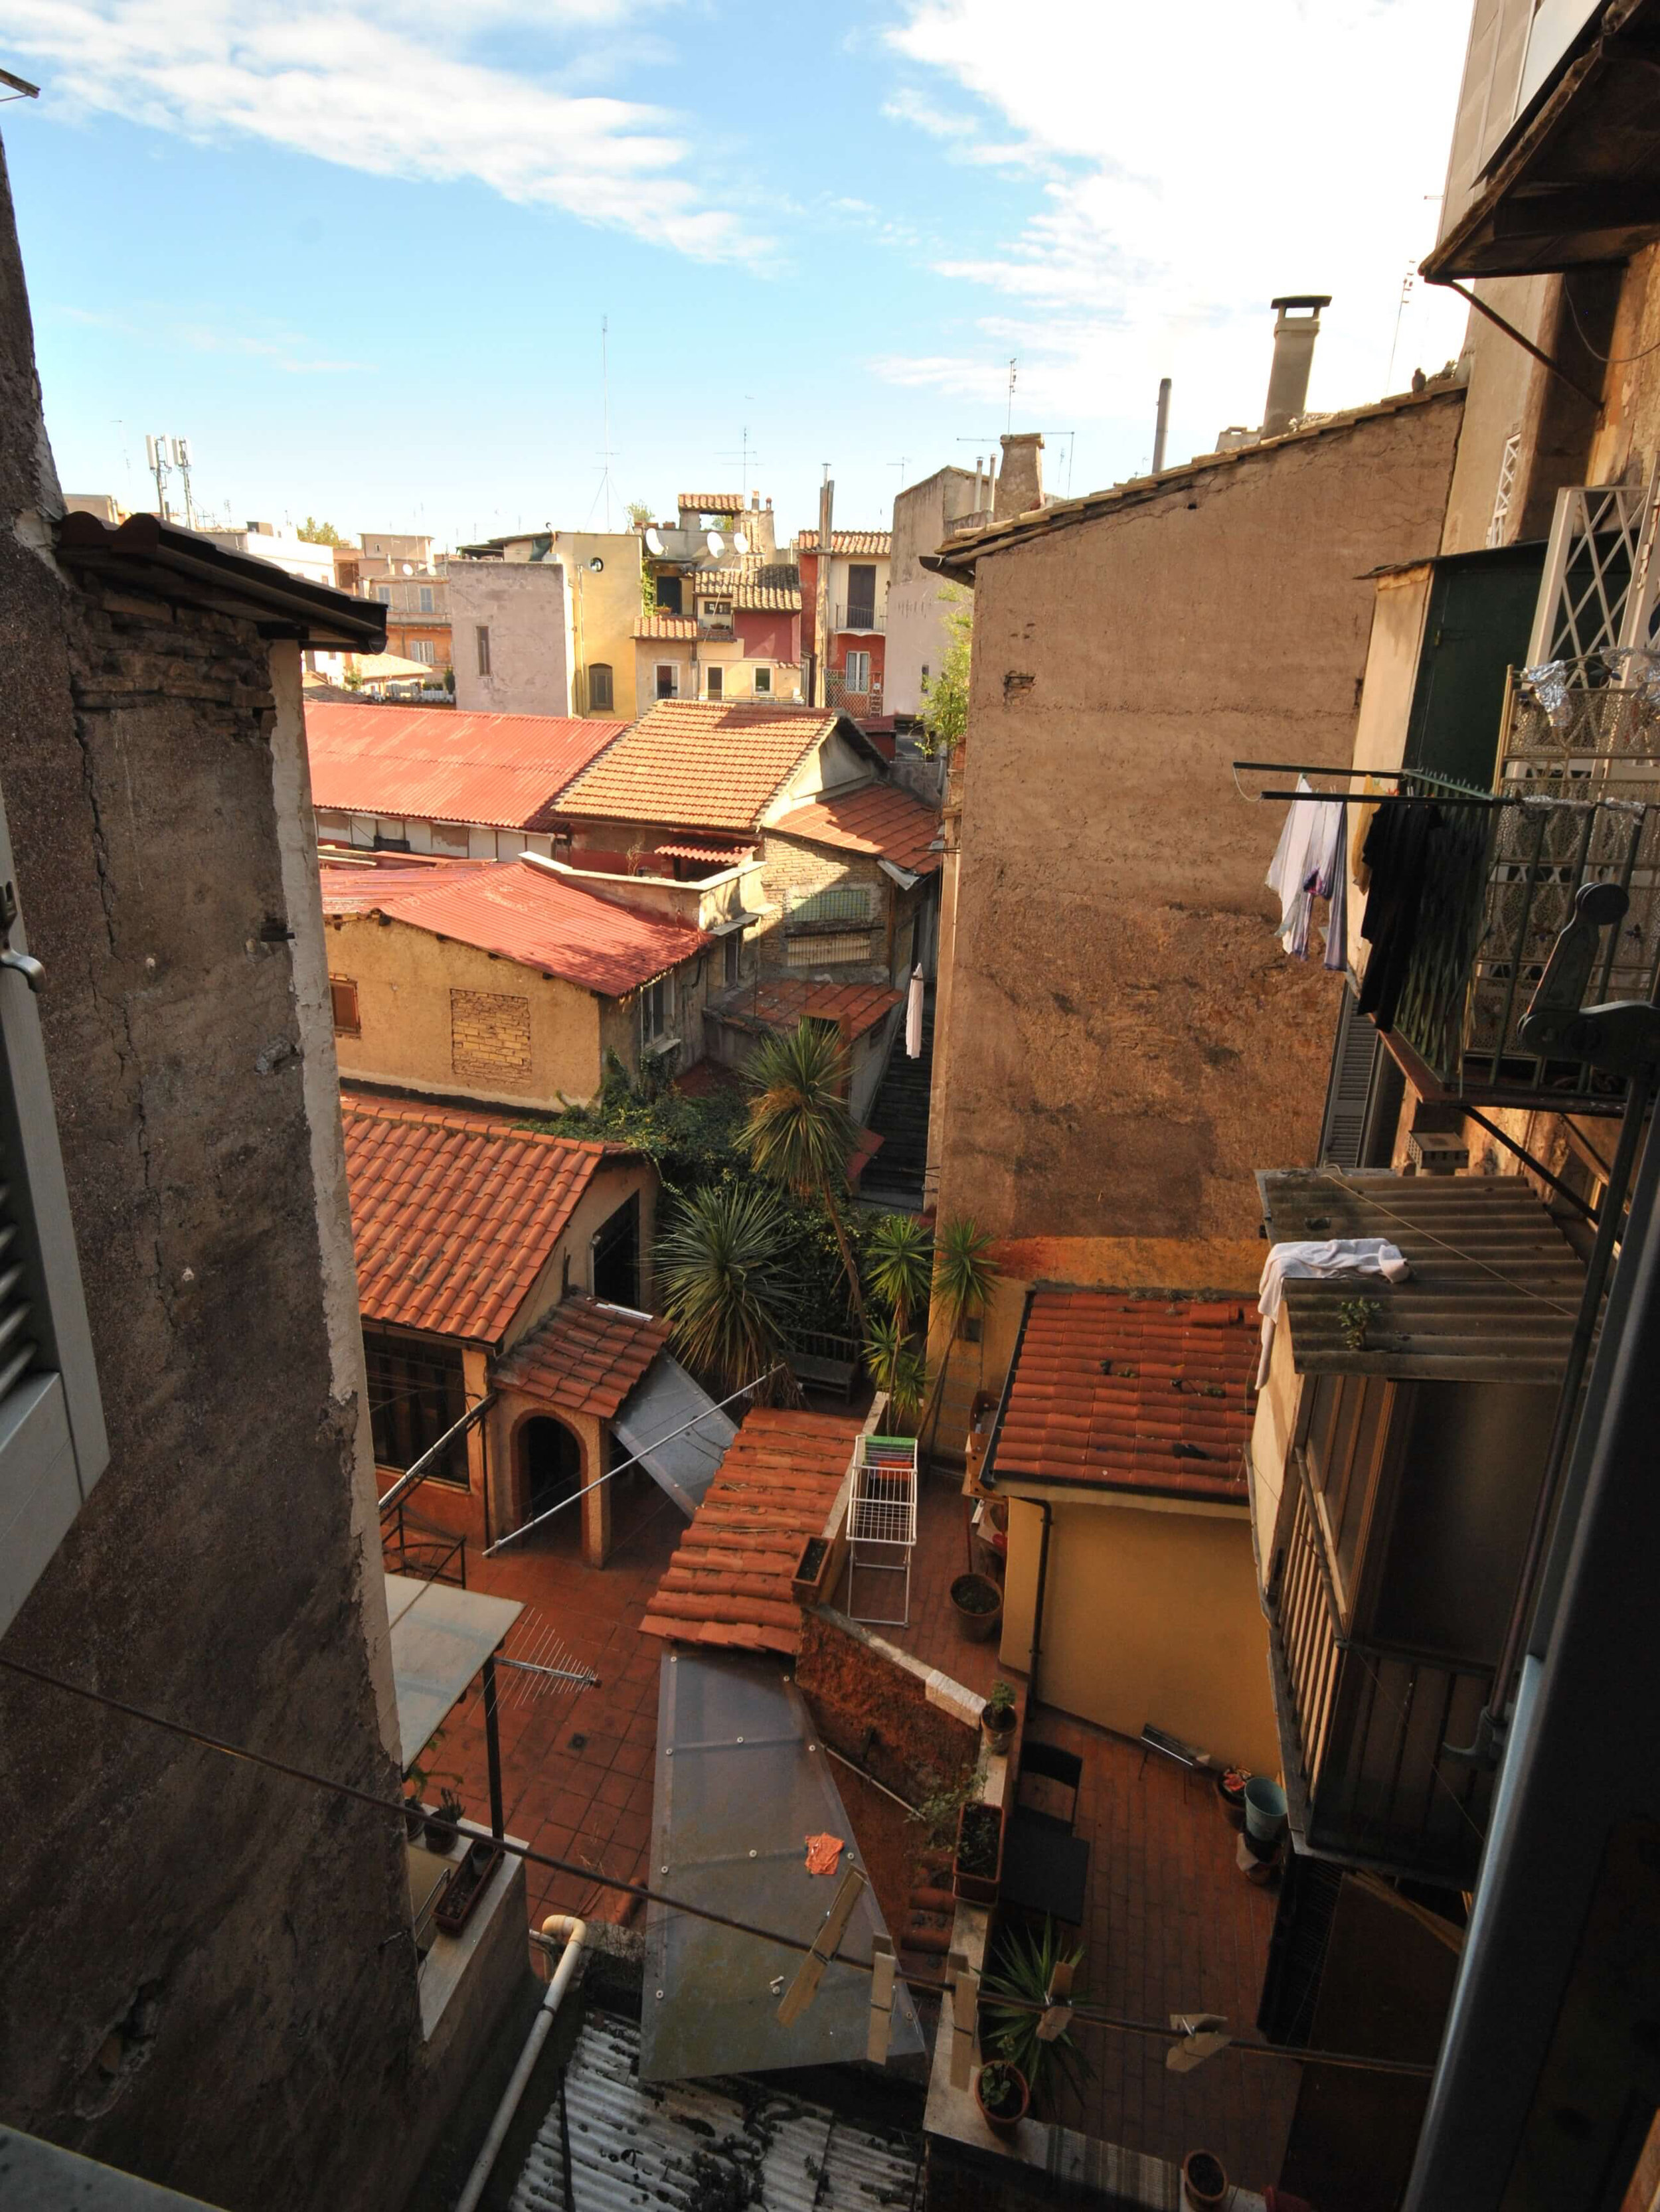 The view from our kitchen window, Rome.